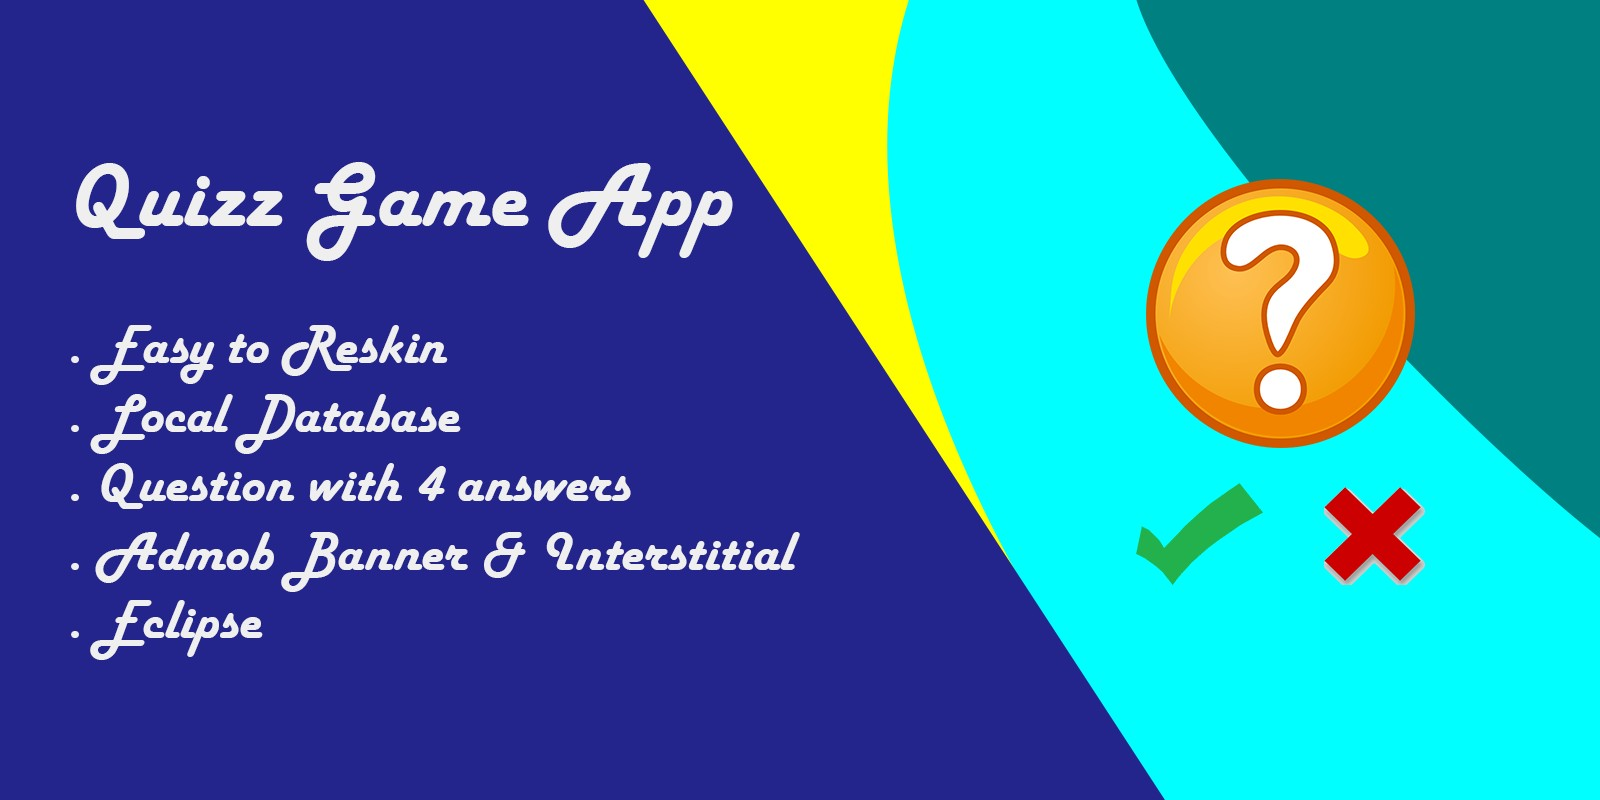 Android Code Apps En games Free download Apk Data